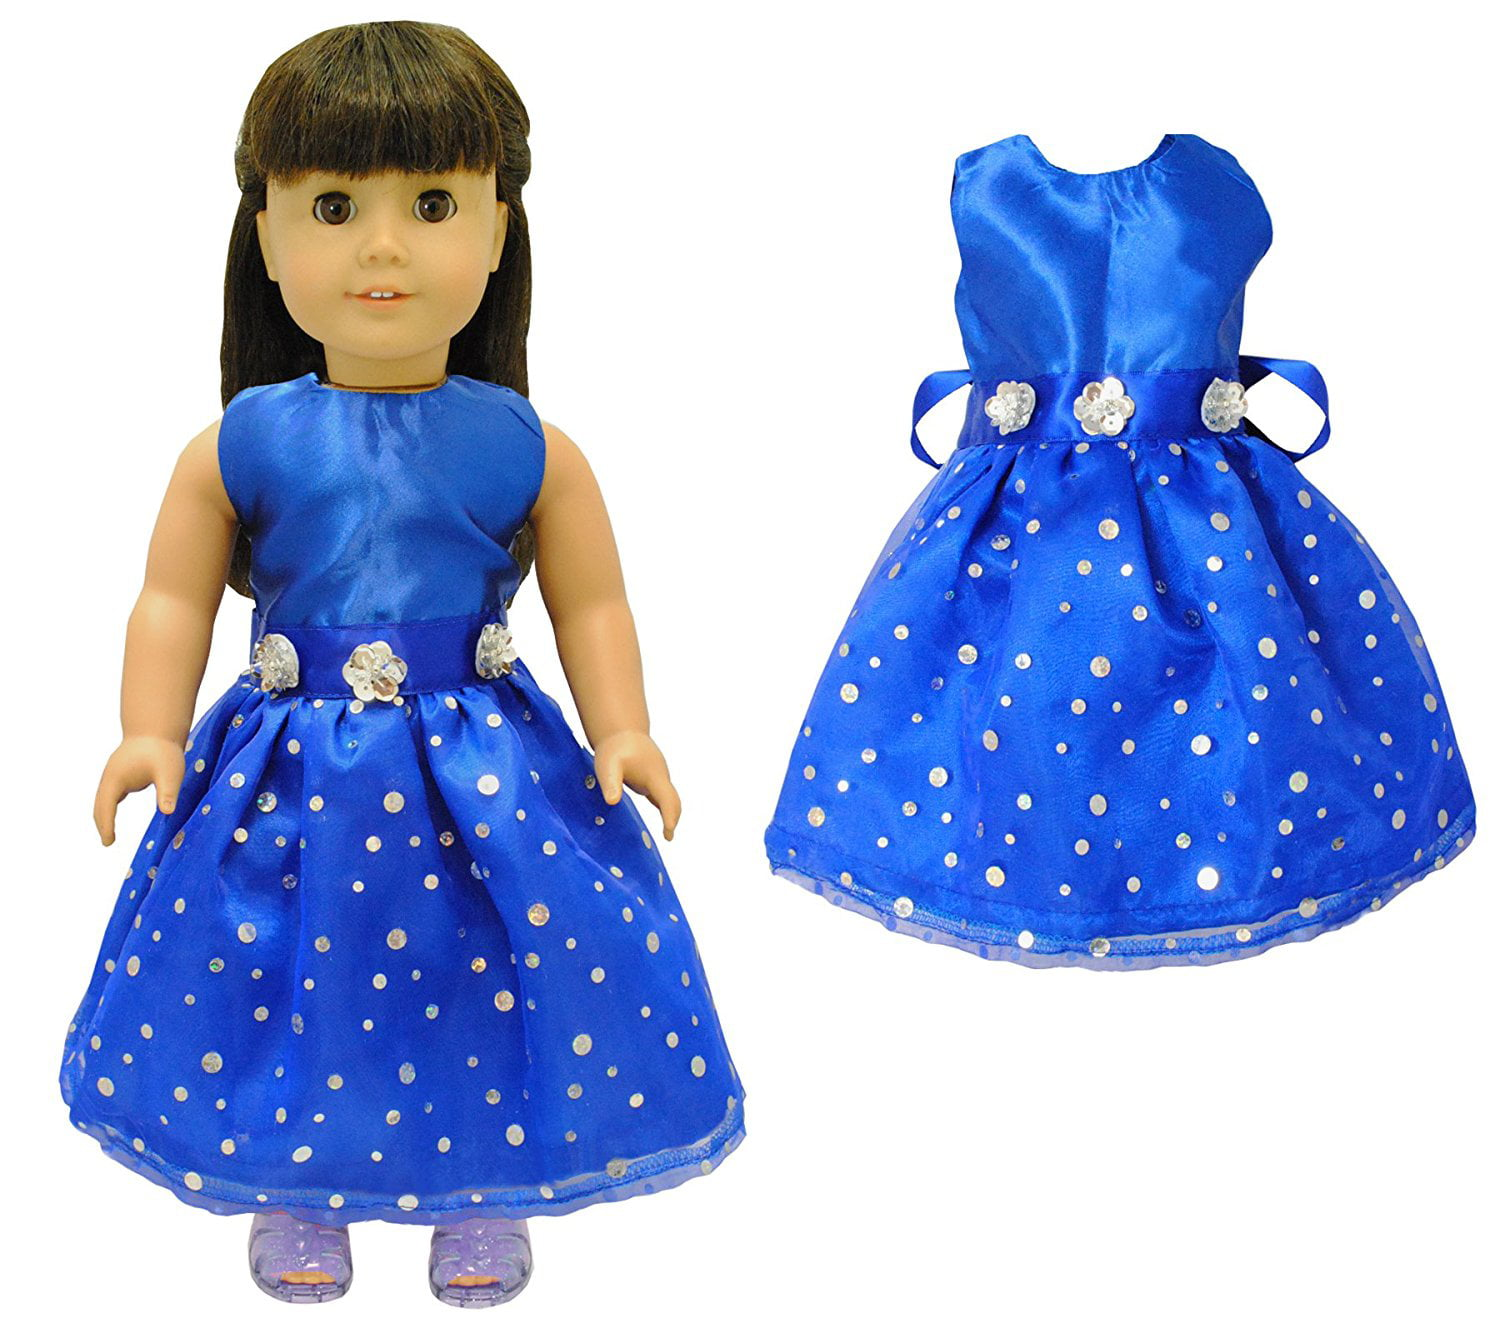 Dark Blue Sea Life Doll Dress Clothes Fits American Girl Dolls